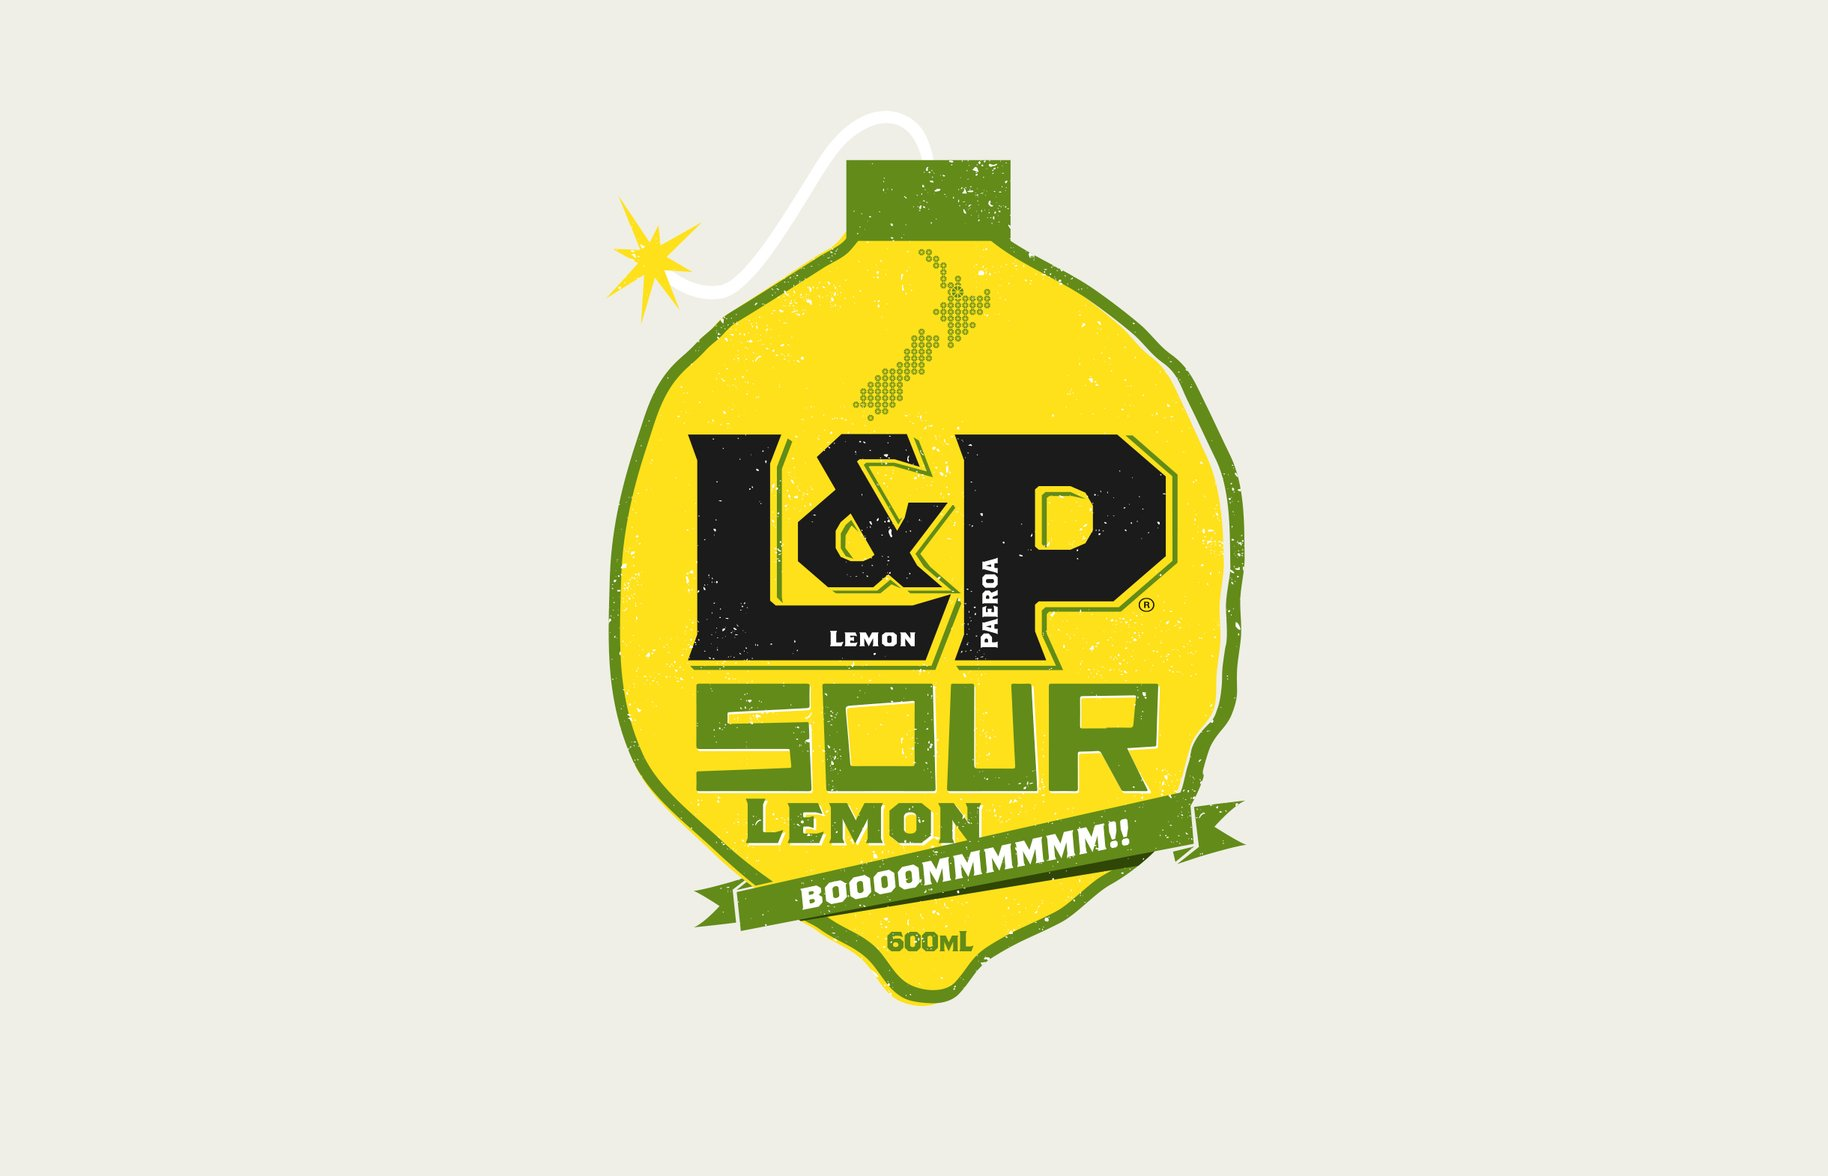 L&P special edition sour lemon bomb graphic